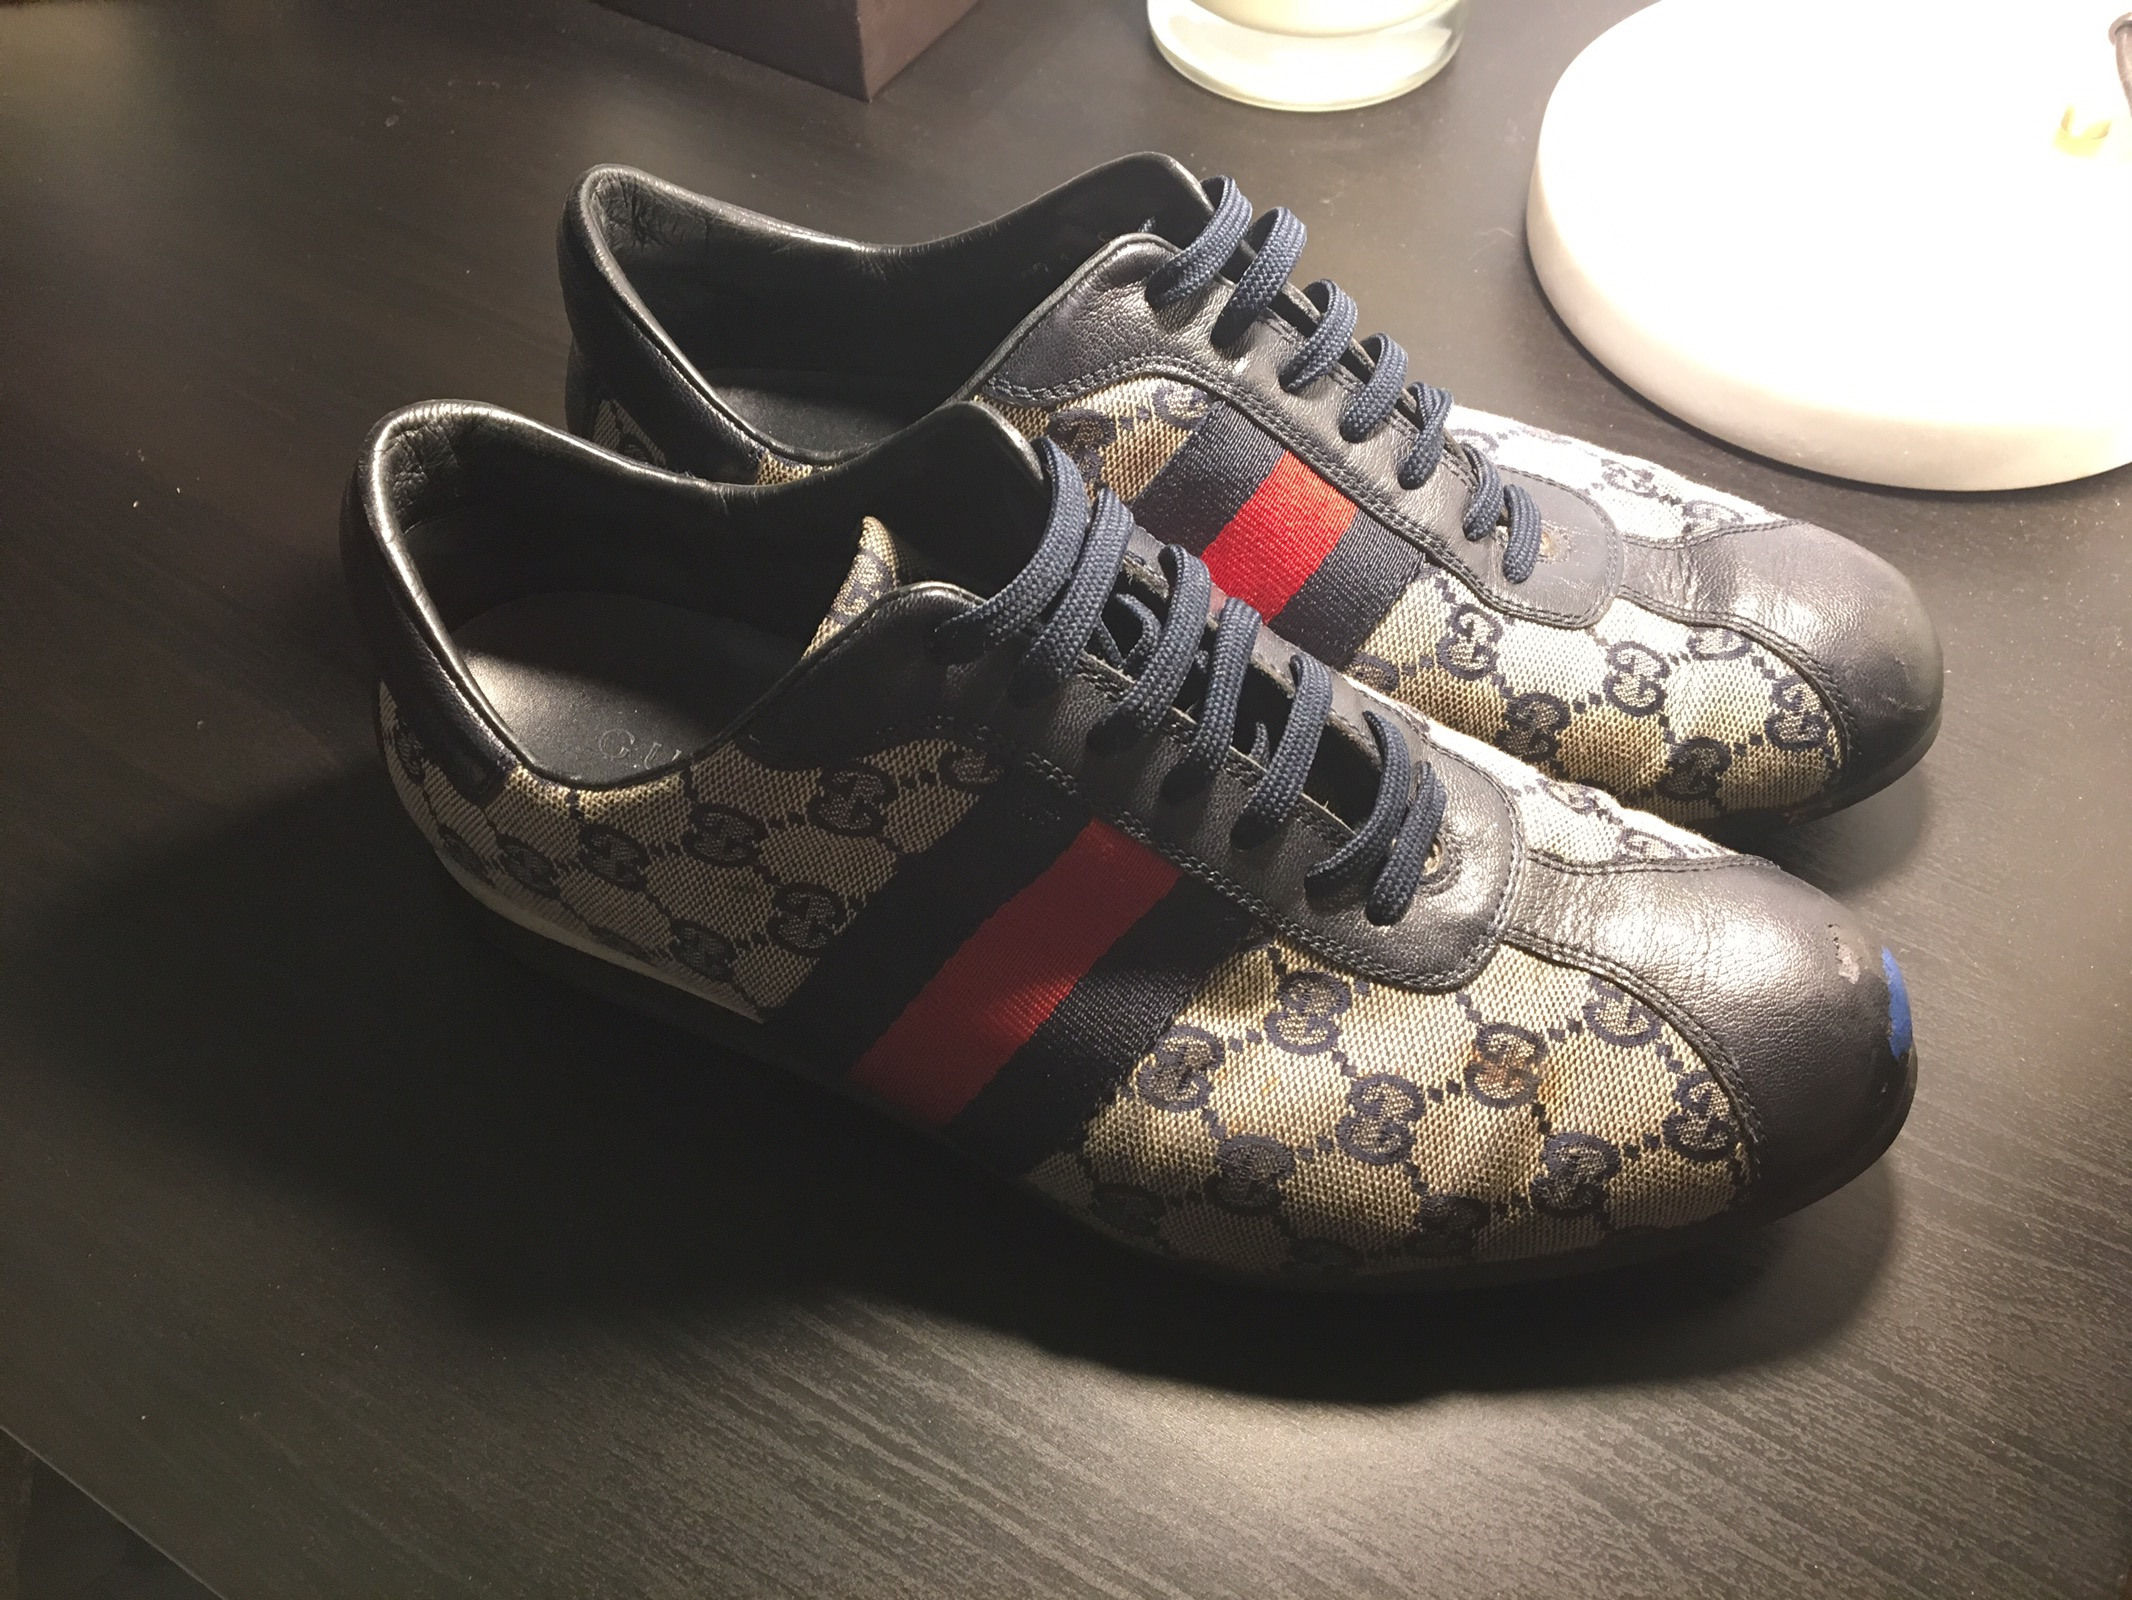 0ce344be9ce Gucci 117711 Lace-up Sneaker Size 8 - Low-Top Sneakers for Sale ...